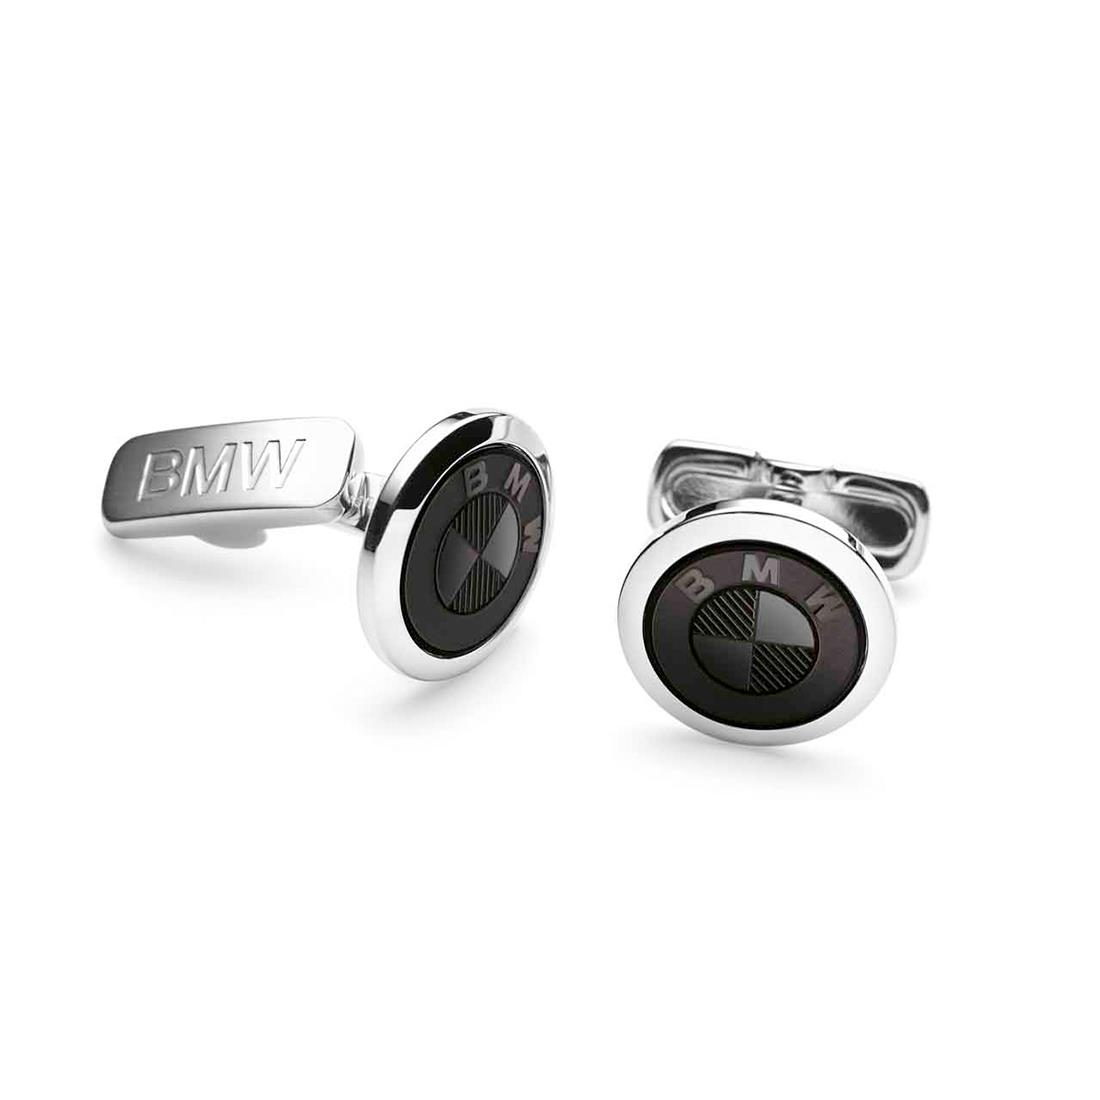 BMW ICONIC CUFF LINKS